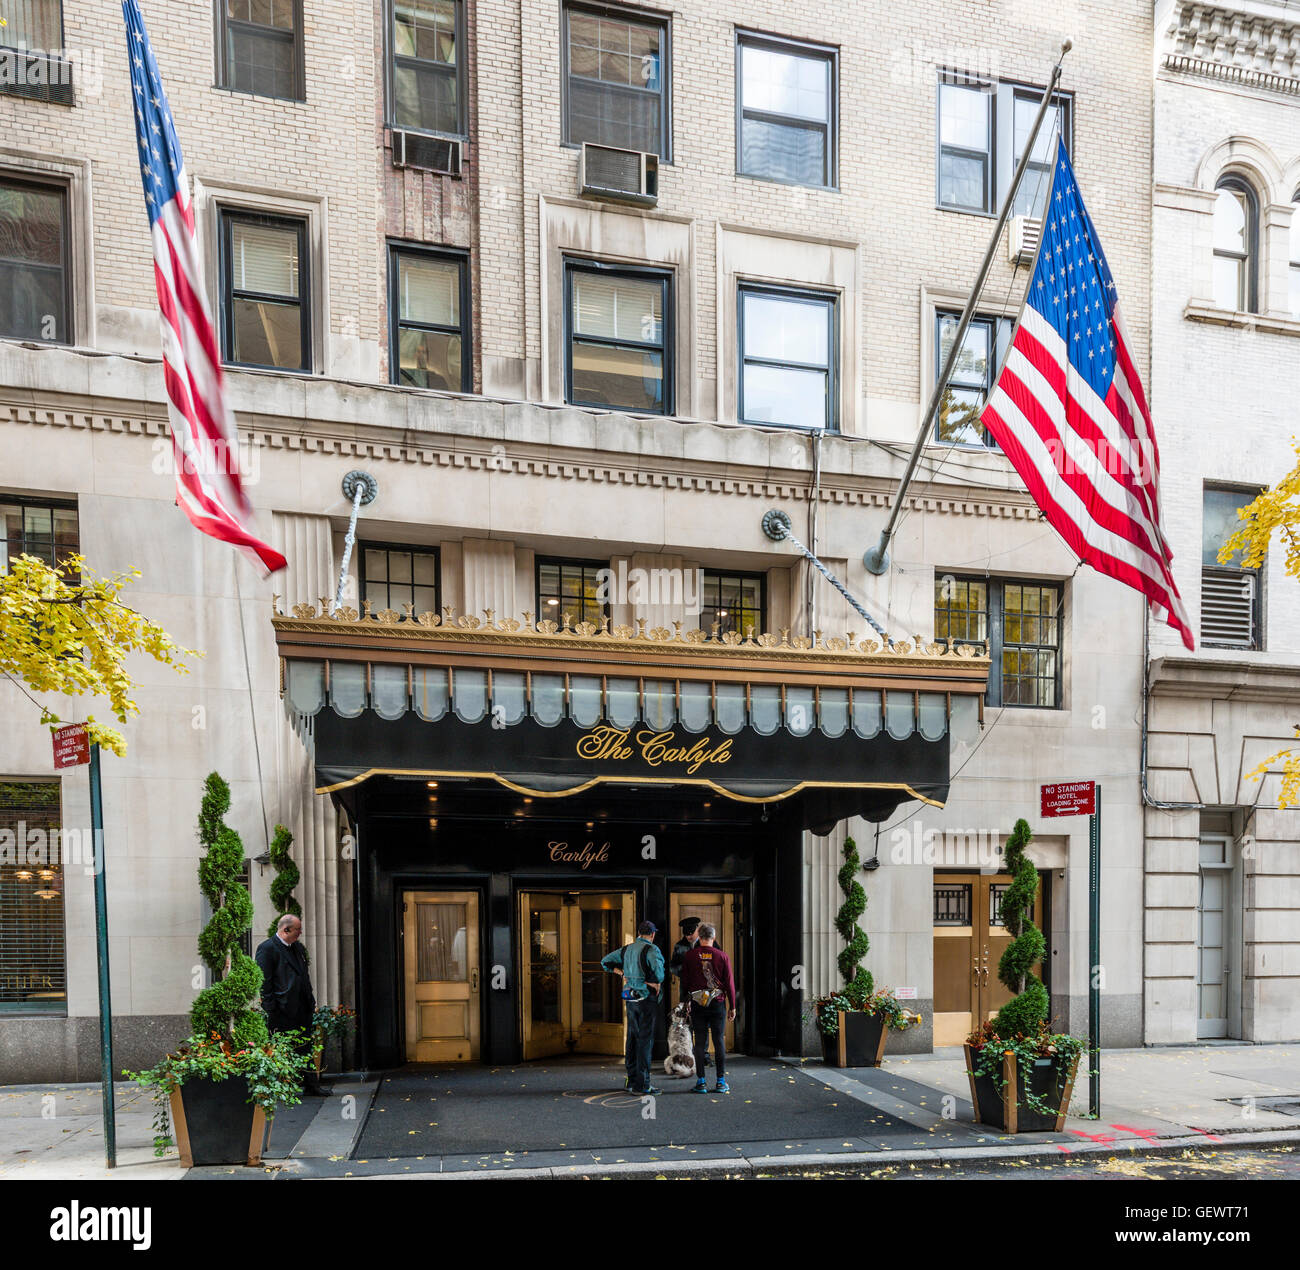 Joggers with dog outside entrance The Carlyle Hotel. Stock Photo